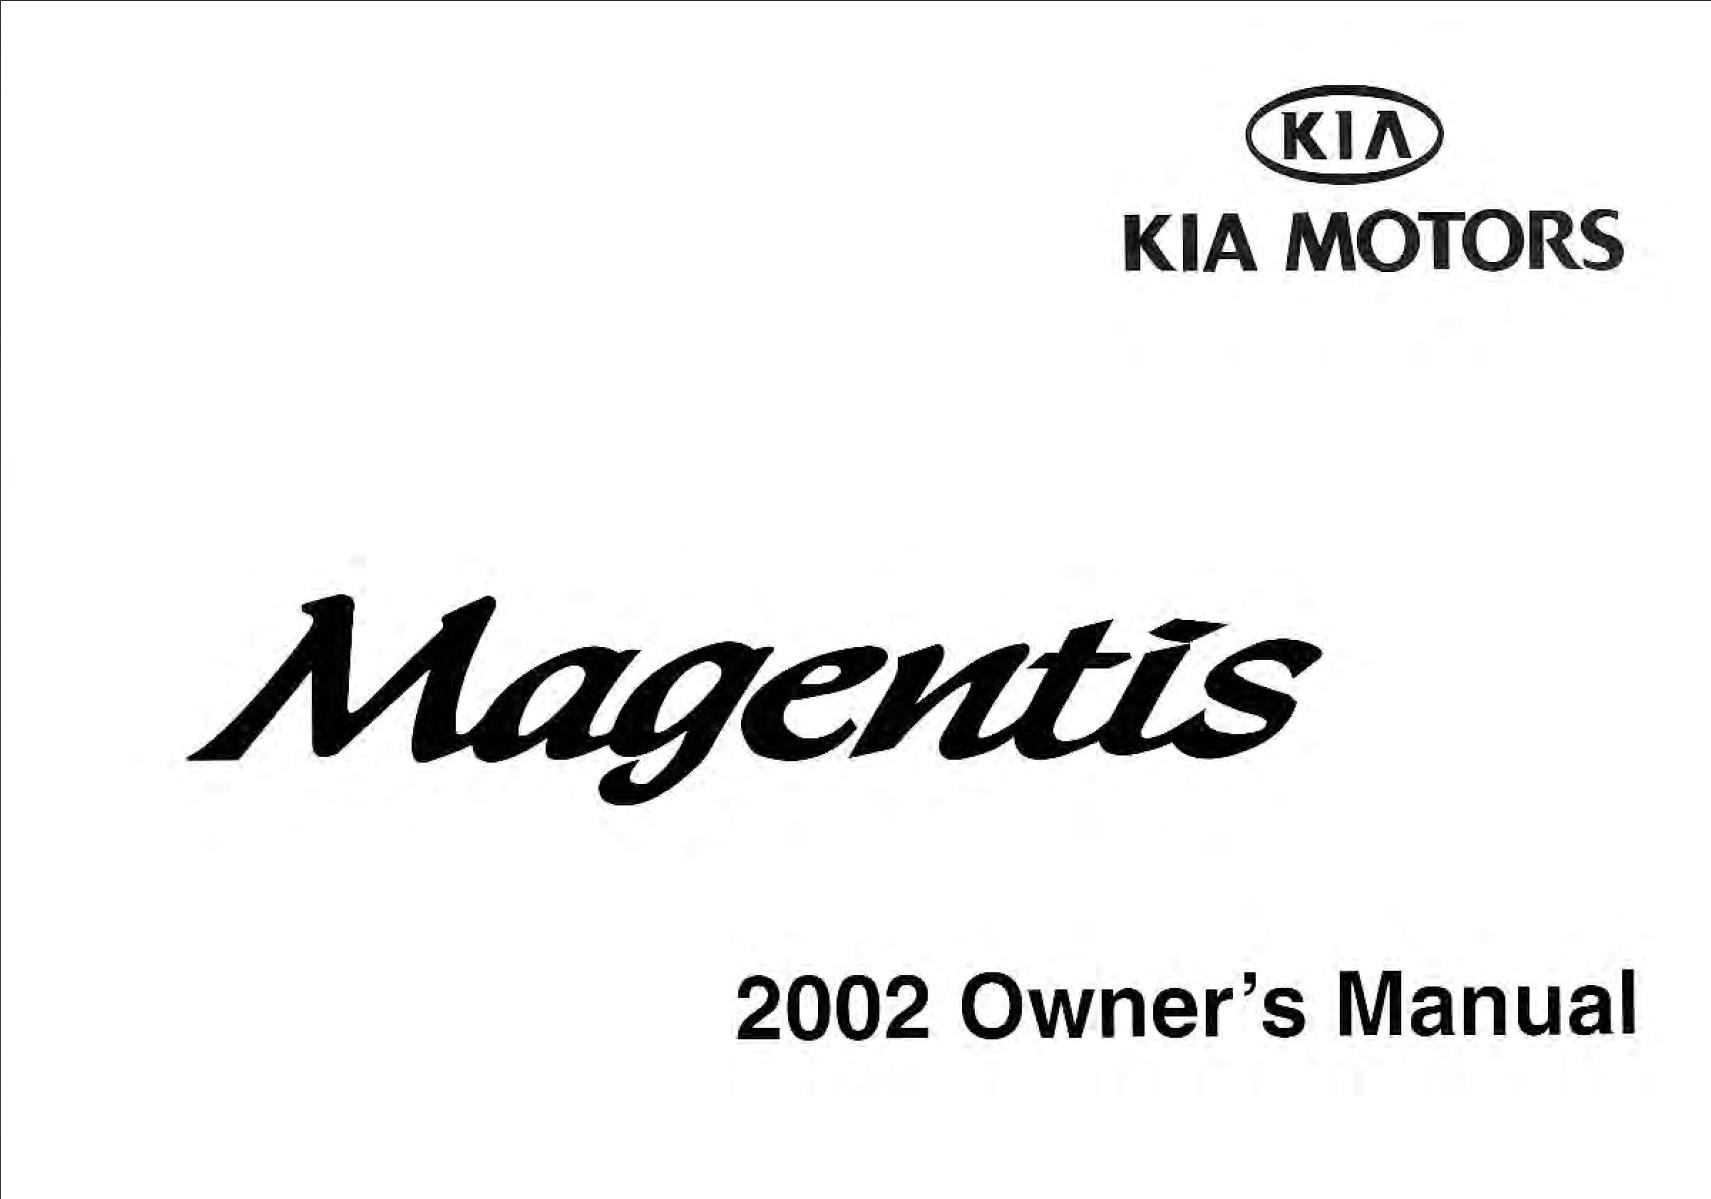 KIA Magentis 2002 Owner's Manual